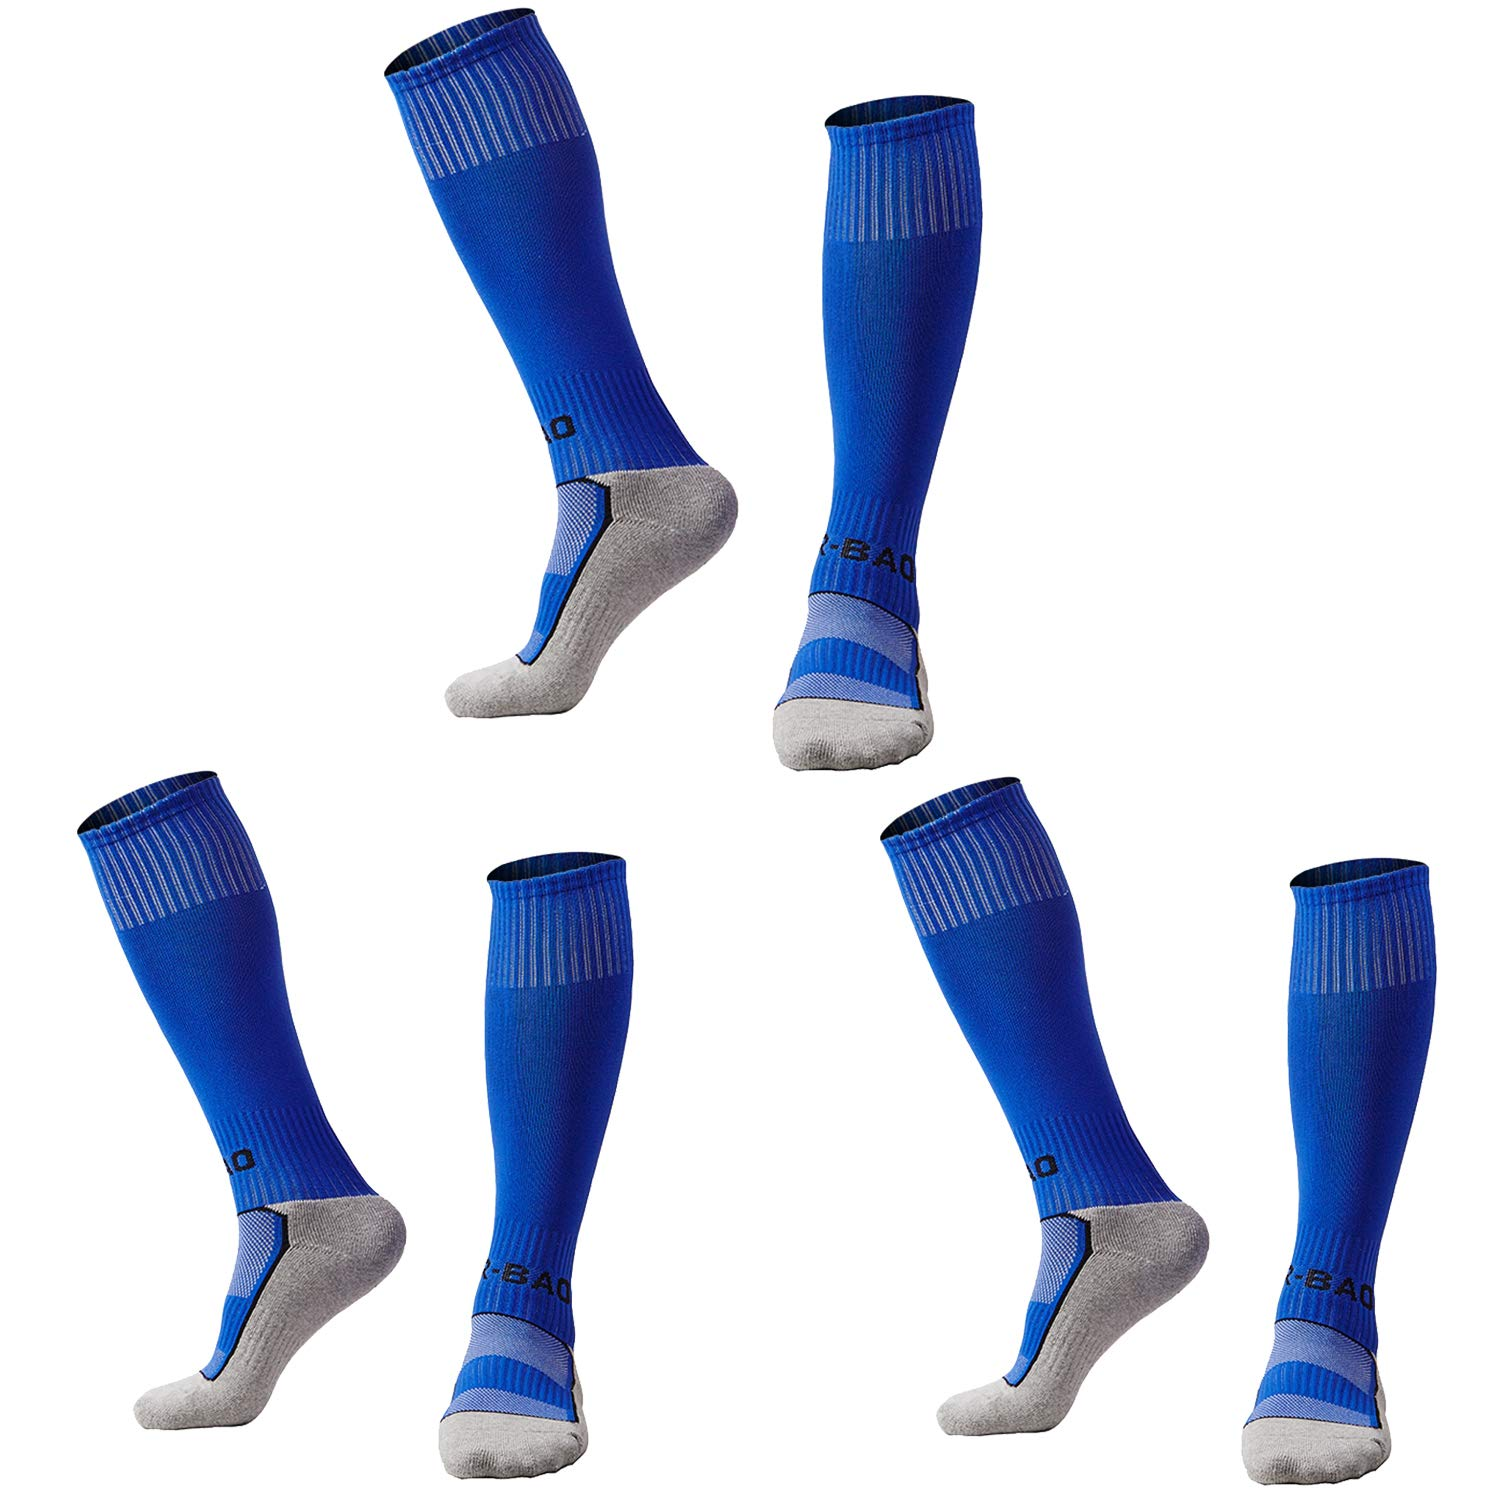 Kids Youth Soccer Socks Knee High Cotton Towel Bottom Sport Compression Long Tube Football Socks for Boys/Girls 3xBlue -S